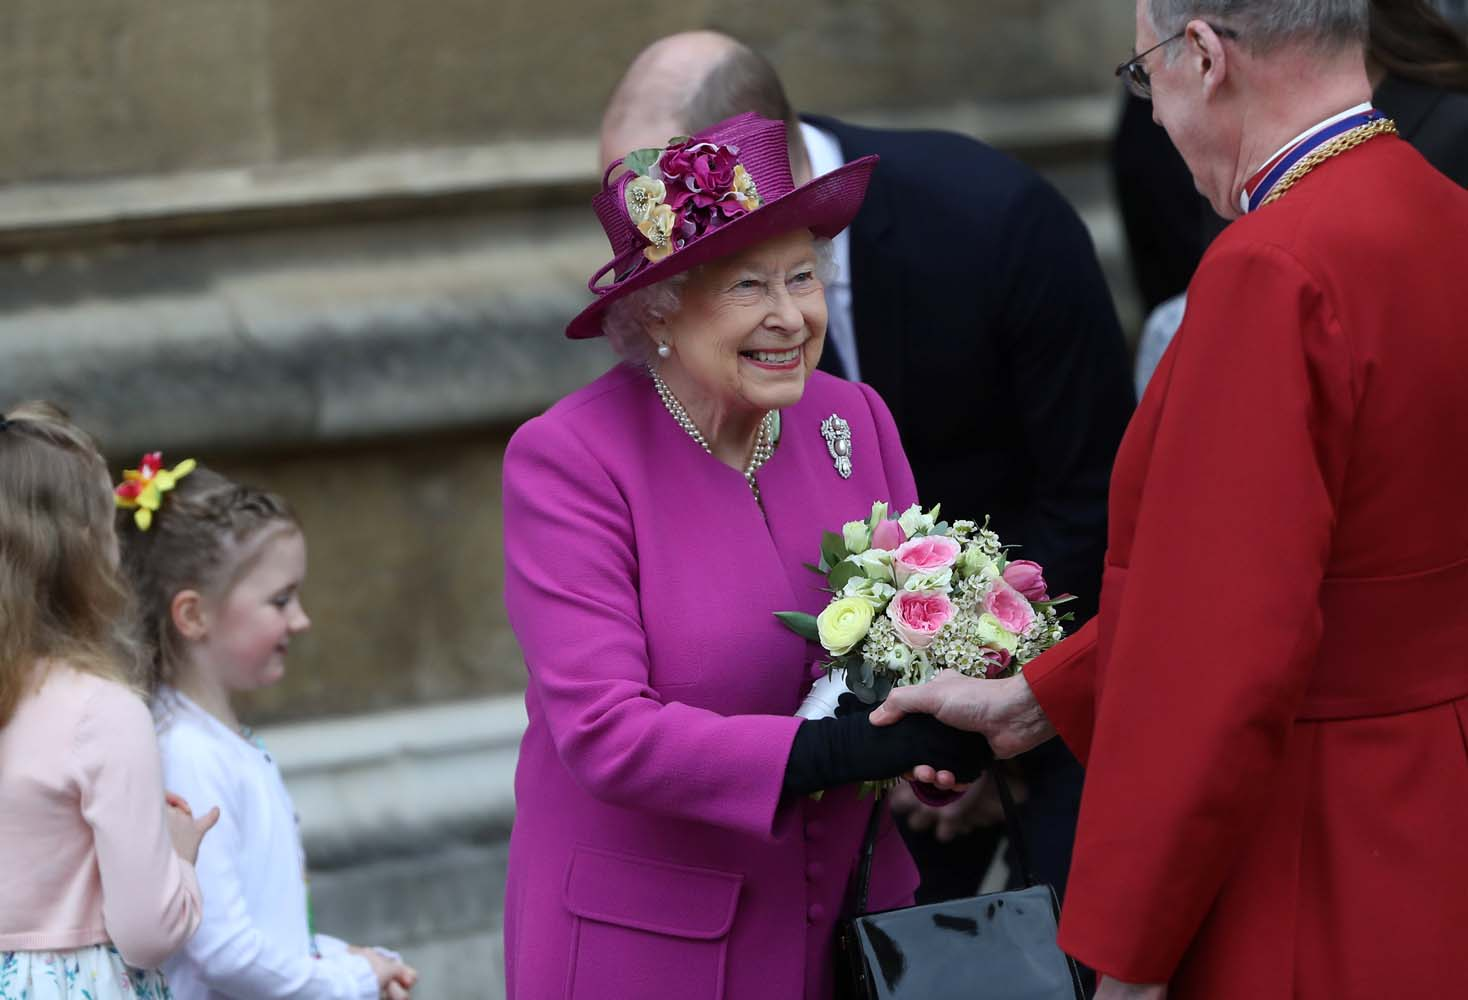 Britain's Queen Elizabeth leaves the annual Easter Sunday service at St George's Chapel at Windsor Castle in Windsor, Britain, April 1, 2018. REUTERS/Simon Dawson